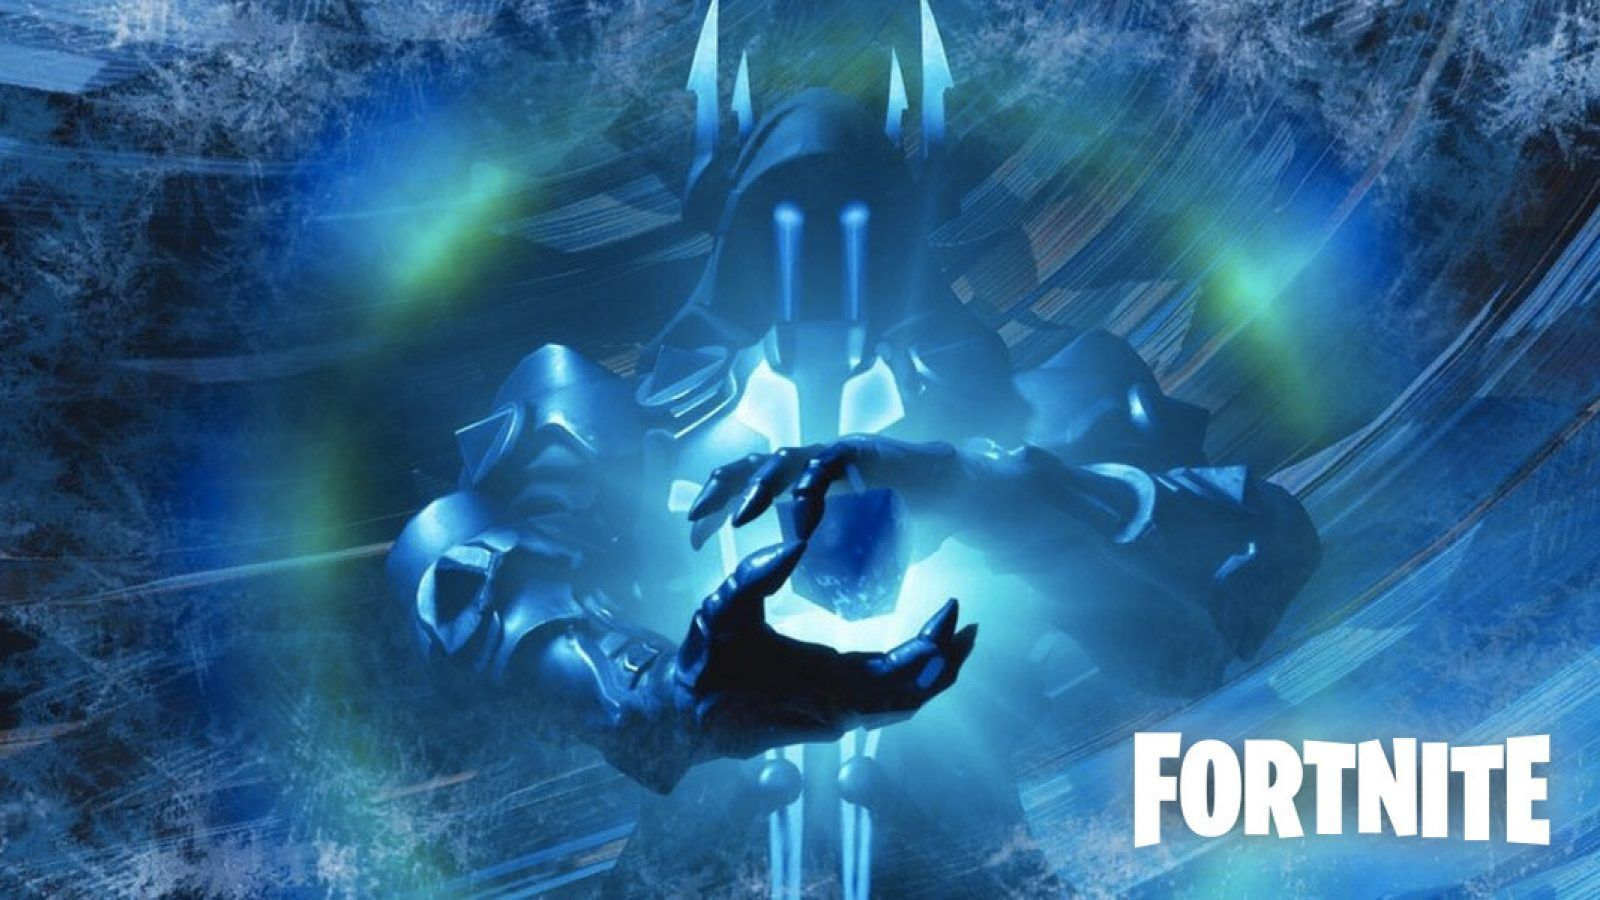 Ice King Fortnite Wallpapers Top Free Ice King Fortnite Backgrounds Wallpaperaccess